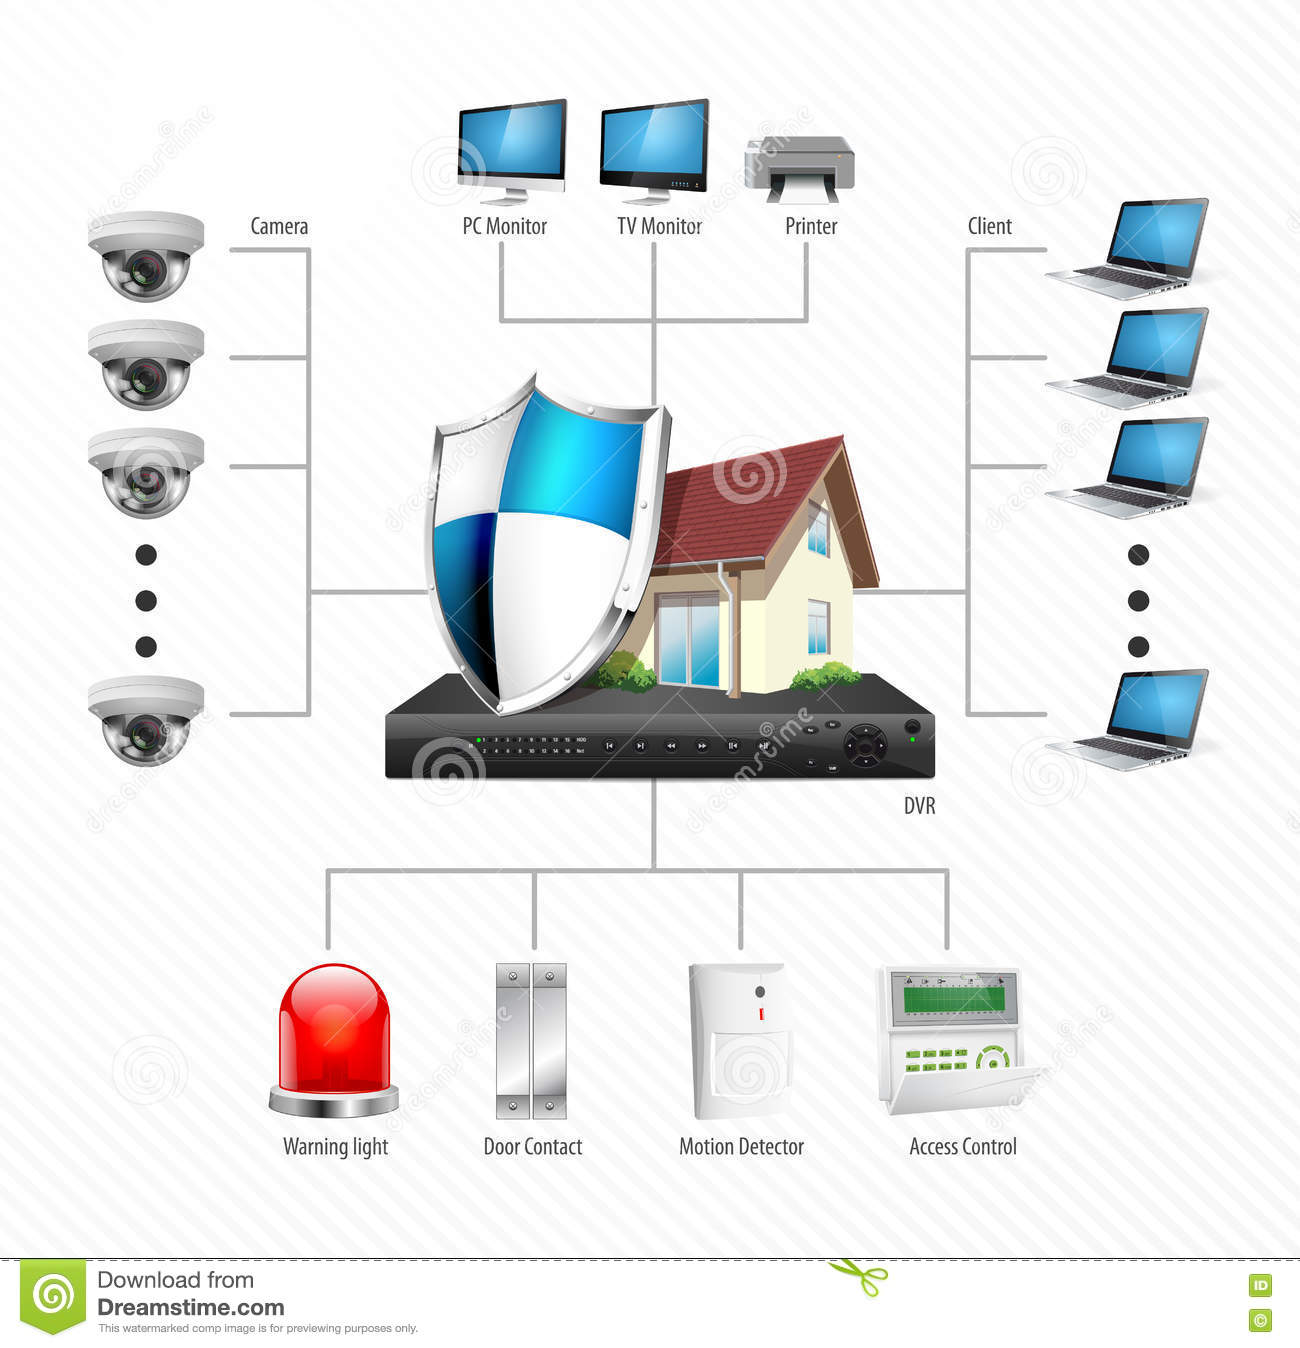 hight resolution of pelco ip camera rj45 wiring diagram pelco security camera iv camera iv camera